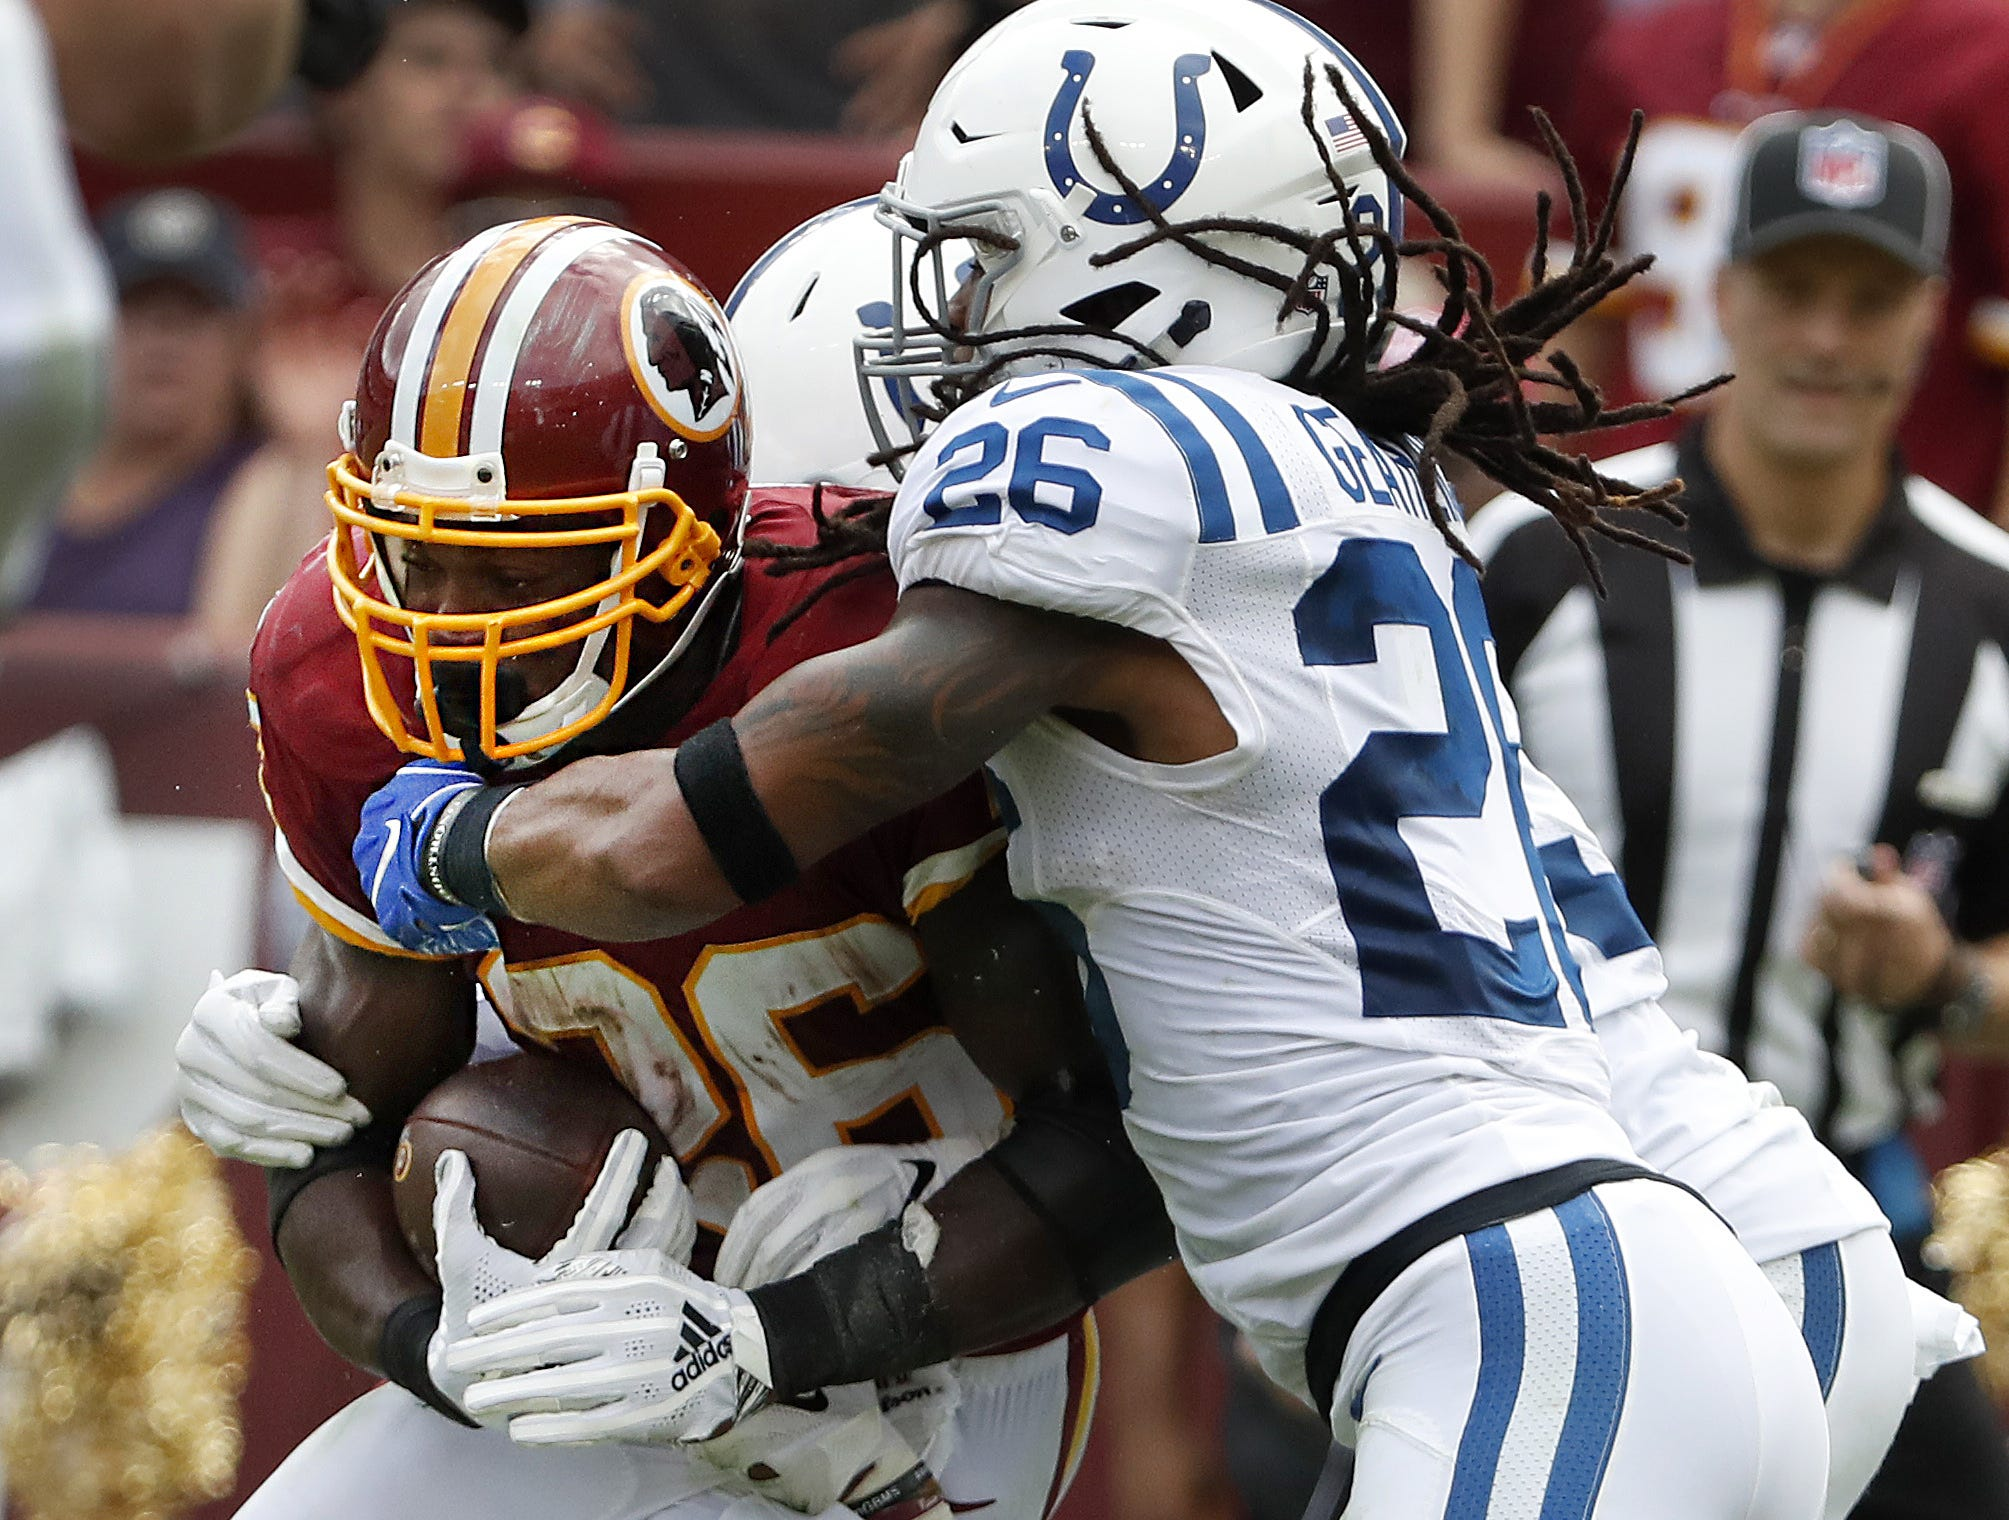 Indianapolis Colts defensive back Clayton Geathers (26) hits Washington Redskins running back Adrian Peterson (26) in the second half of their game at FedEx Field in Landover MD. on Sunday, Sept. 16, 2018.